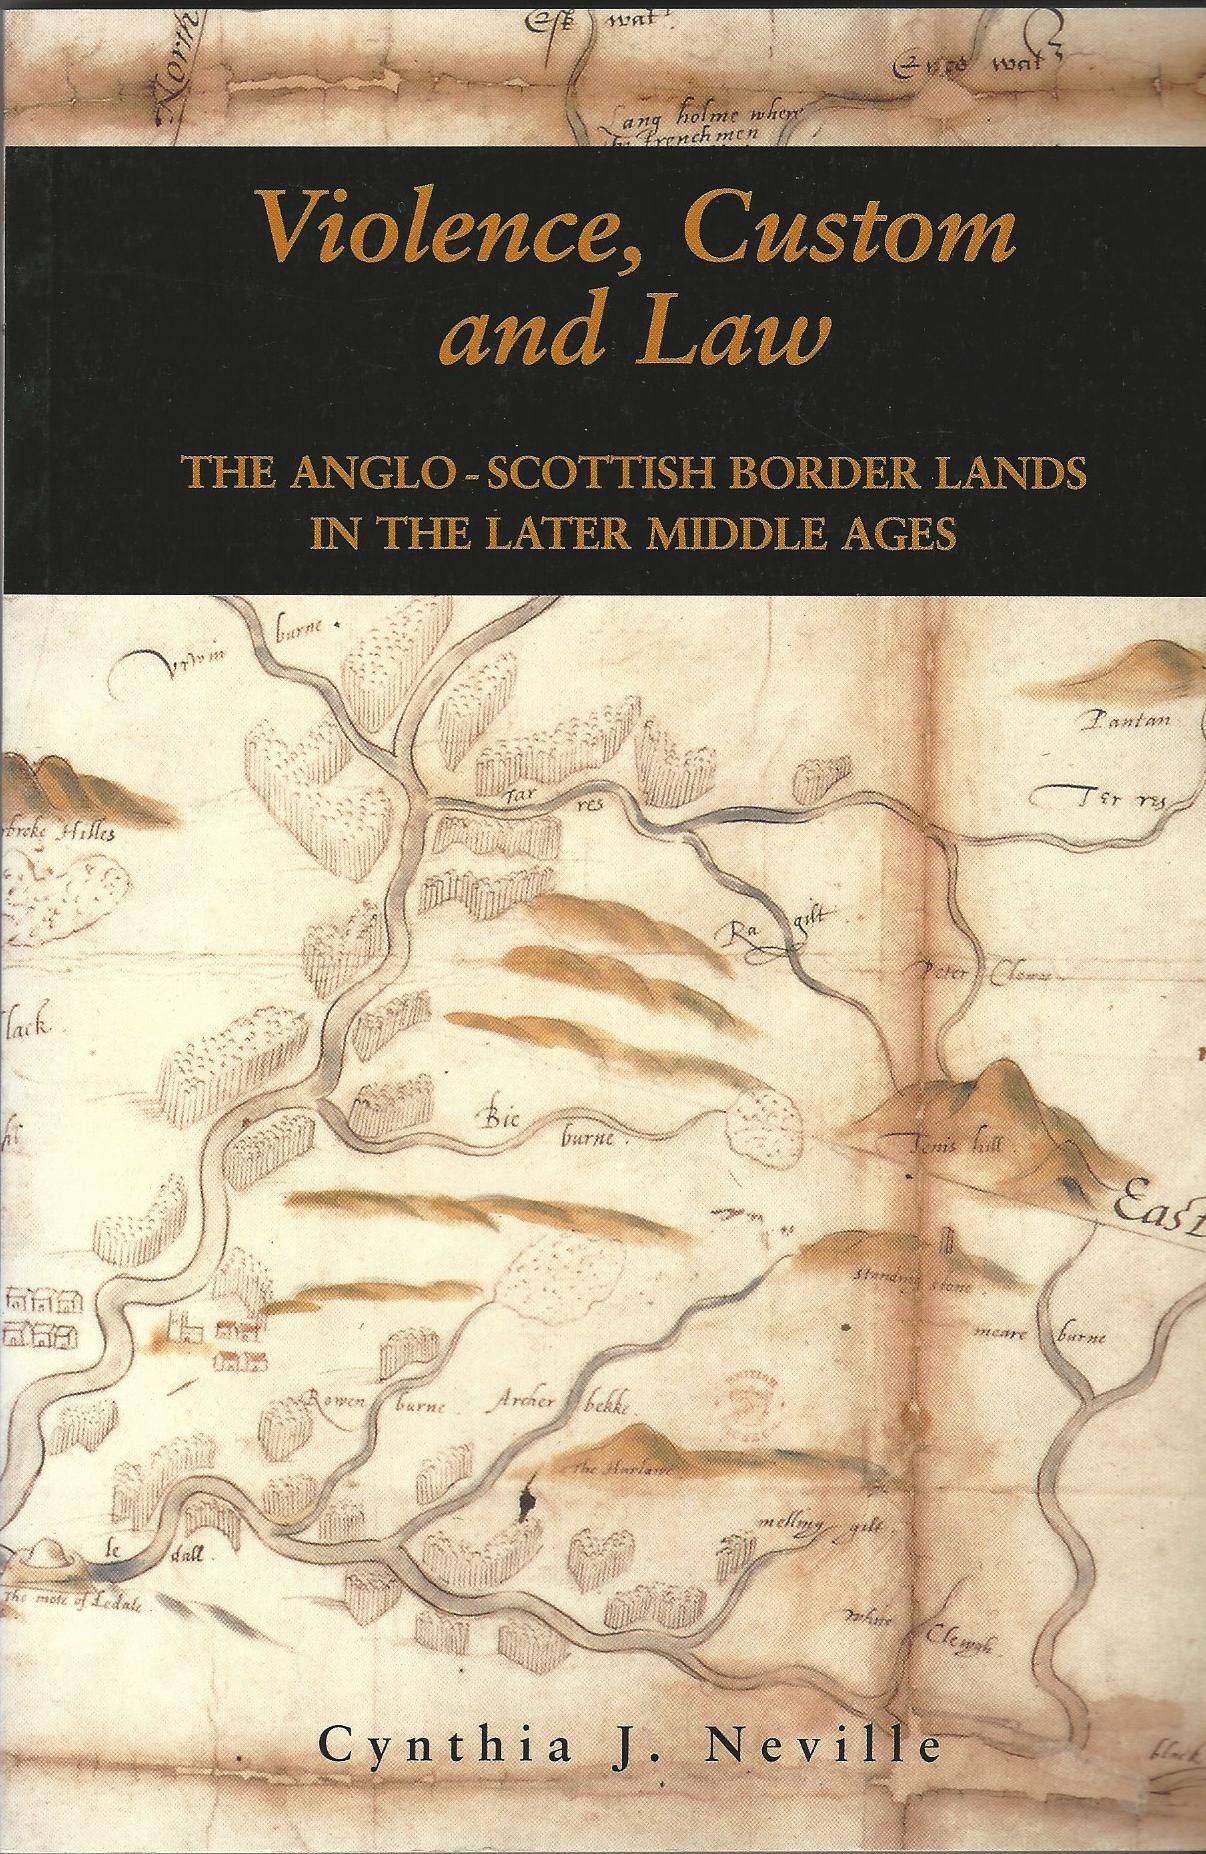 Image for Violence, Custom, and the Law: Violence, Custom and Law: The Anglo-Scottish Border Lands in the Later Middle Ages